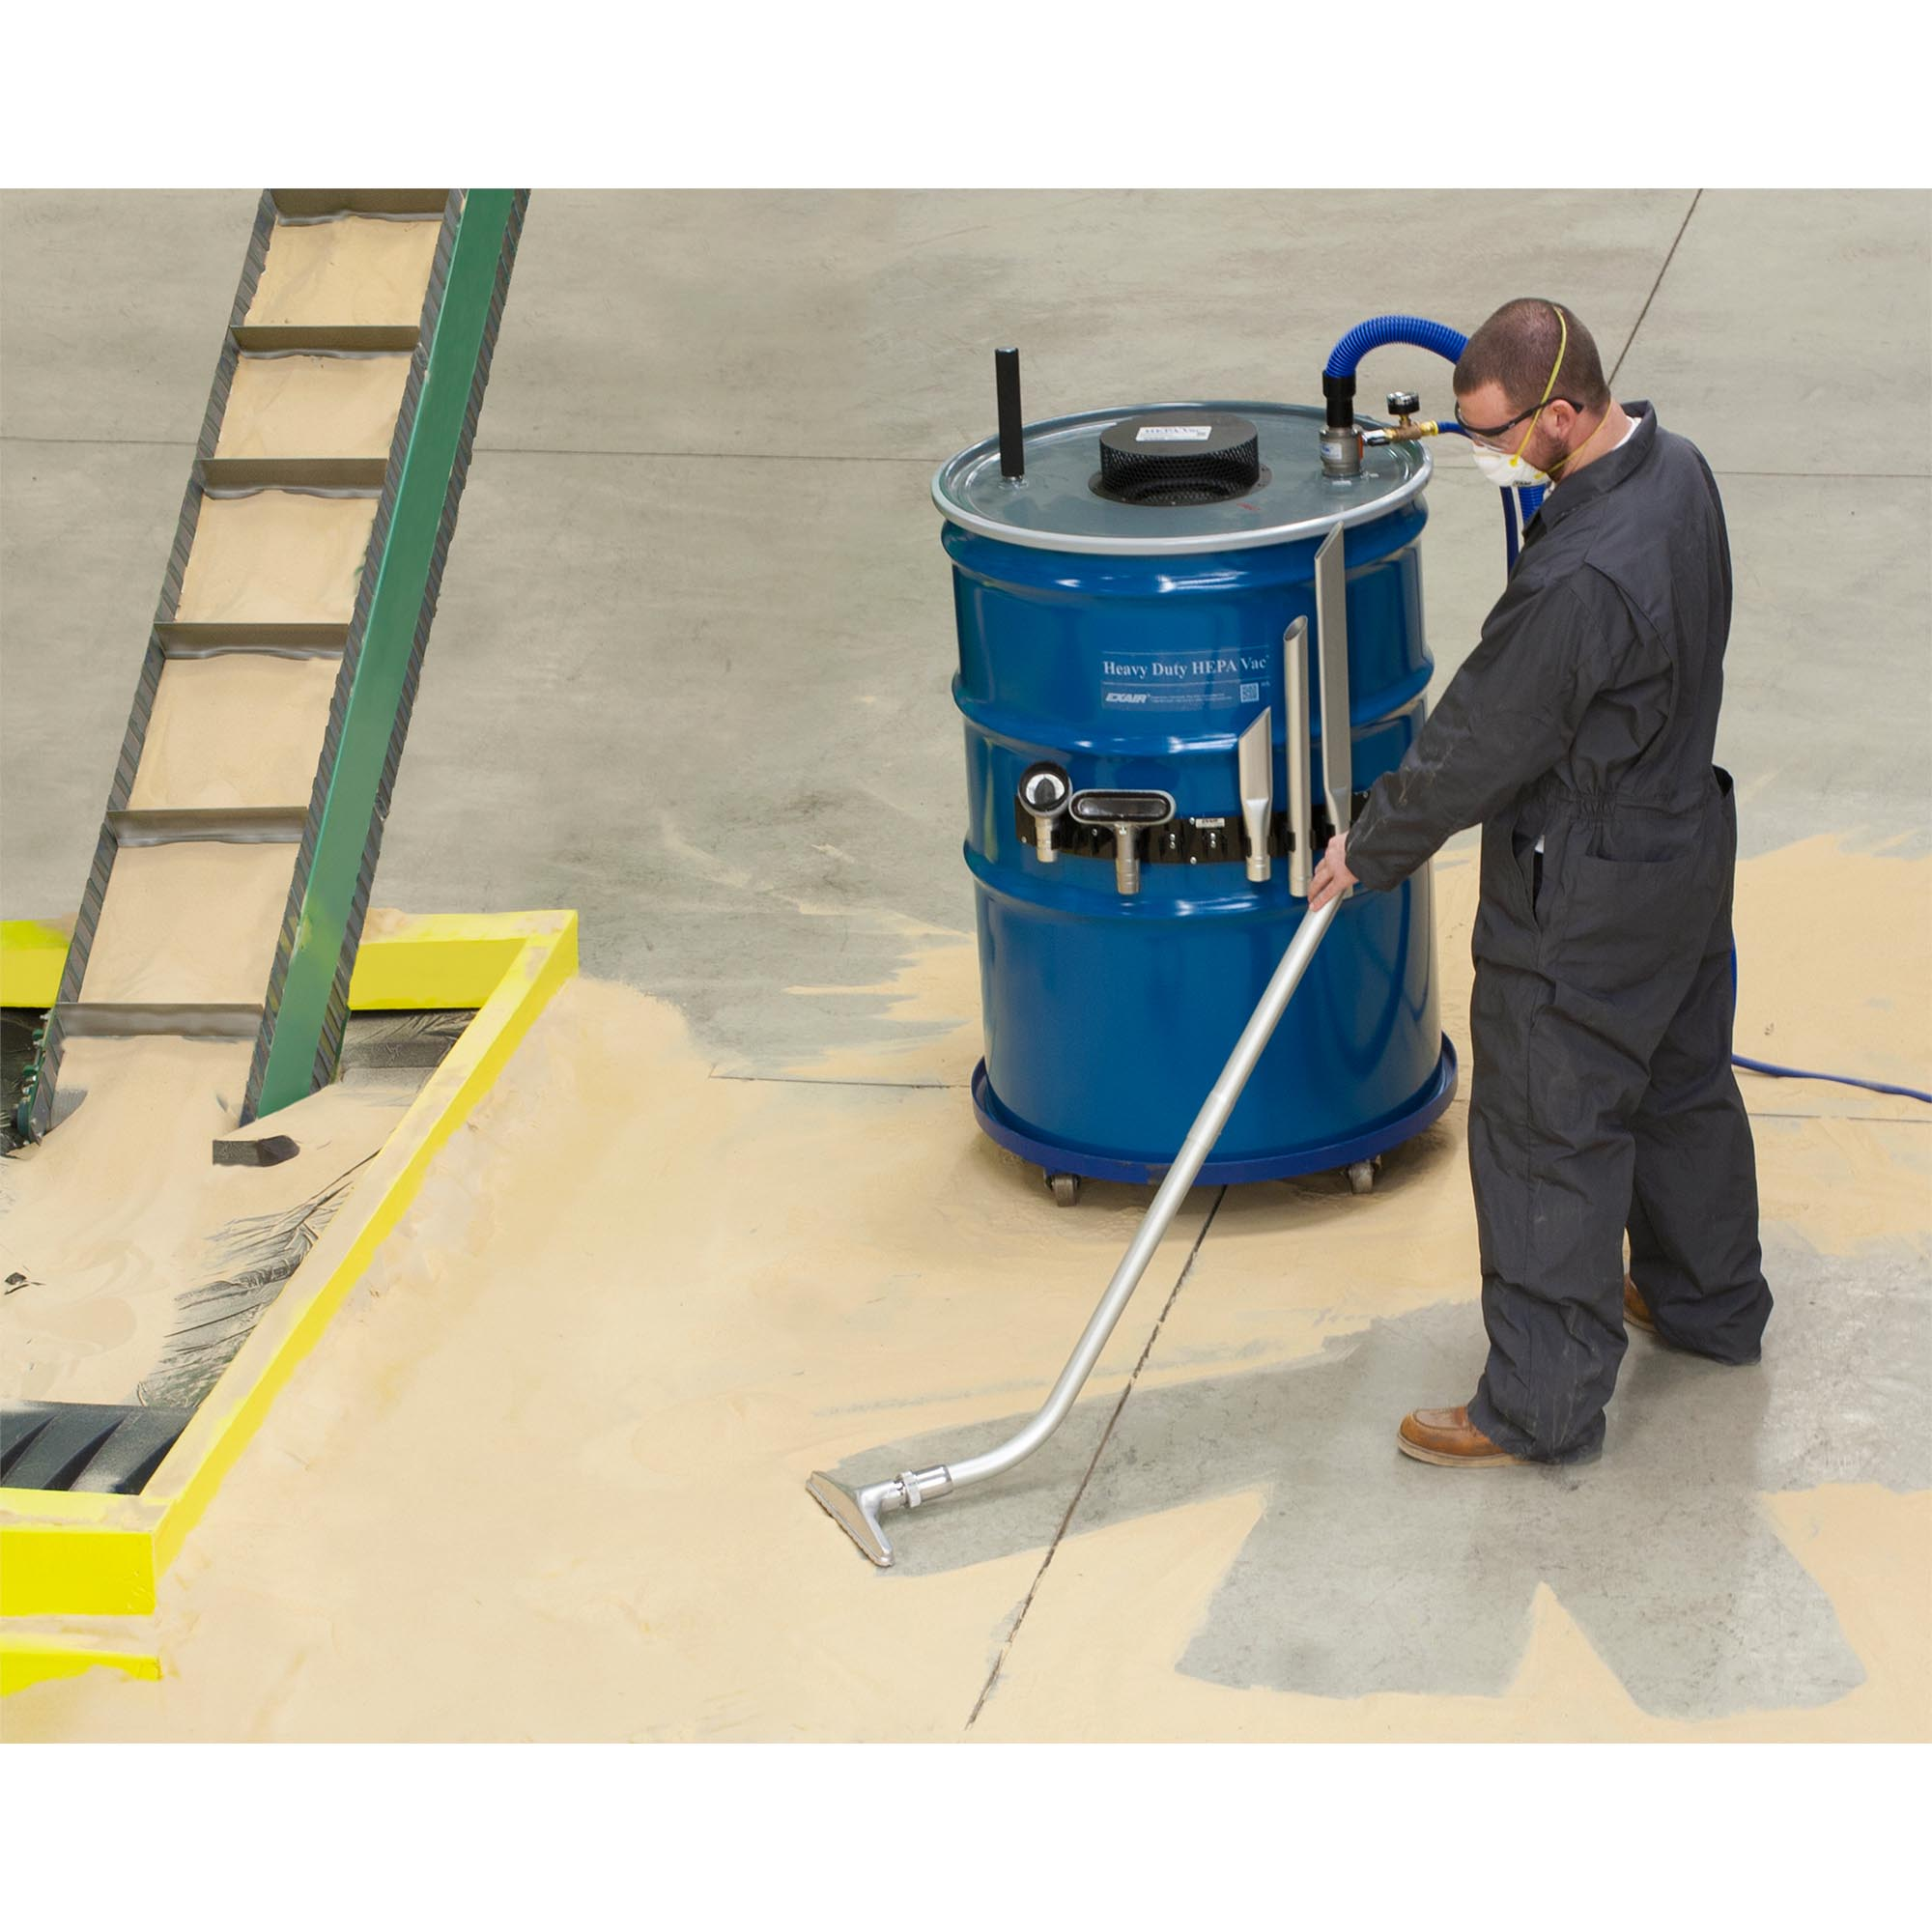 A clogged filtering system for a buffing booth is quickly cleaned and put back into service using the Heavy Duty HEPA Vac.